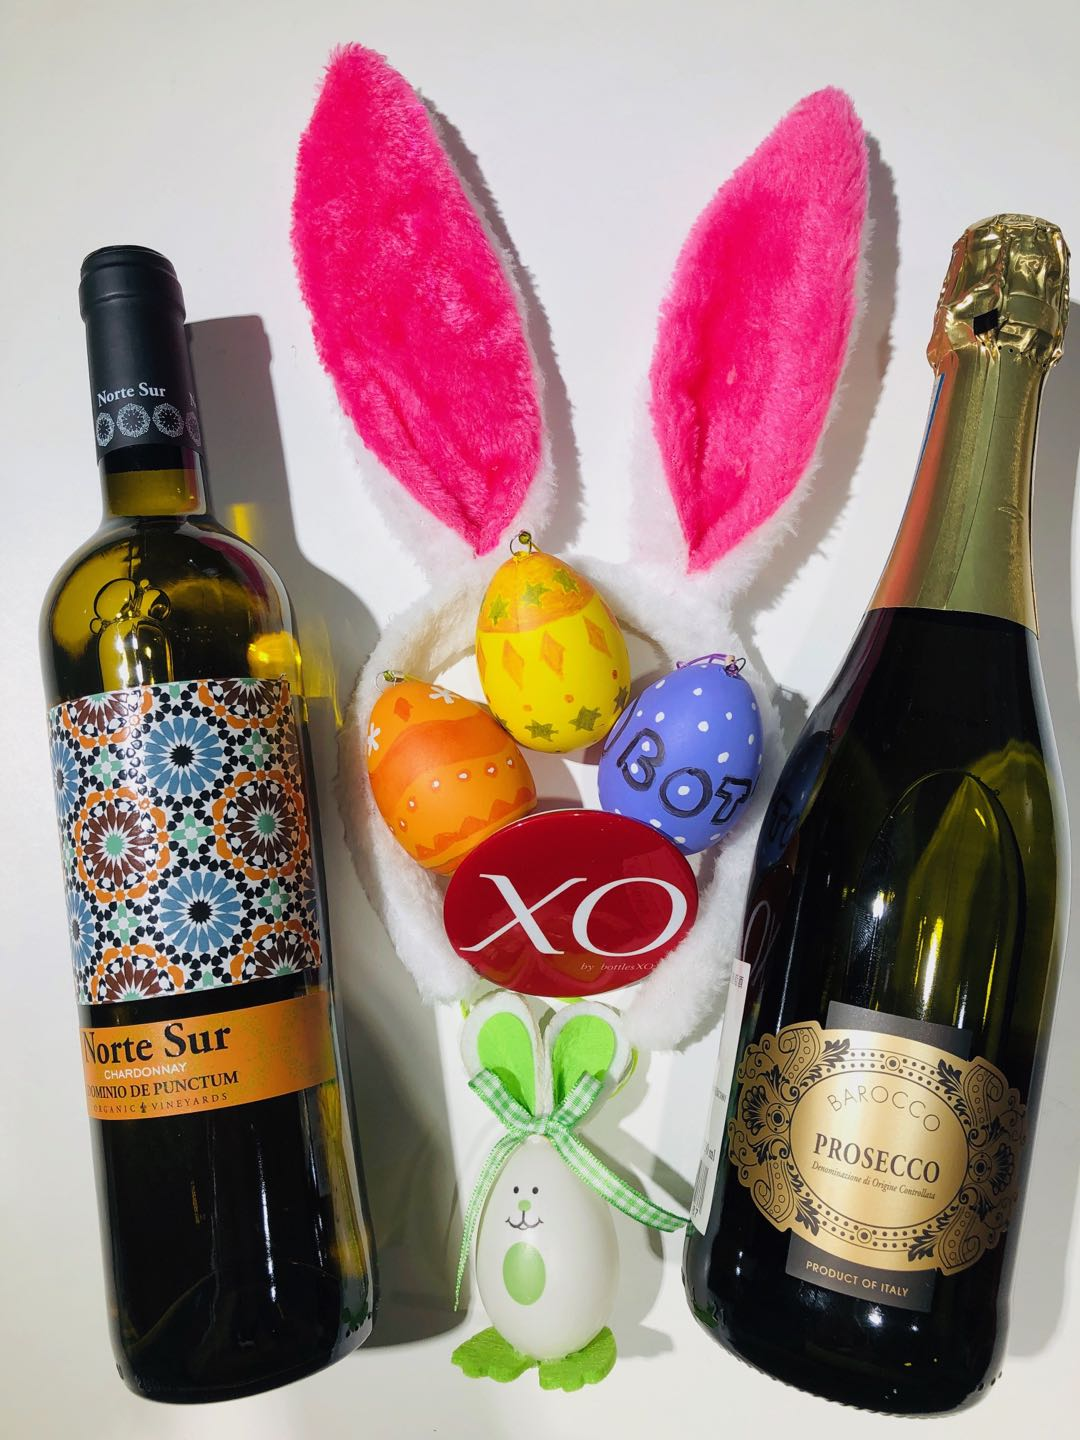 Show Us Your Best Pics to WIN ¥6,000 in Easter Gifts & Prizes